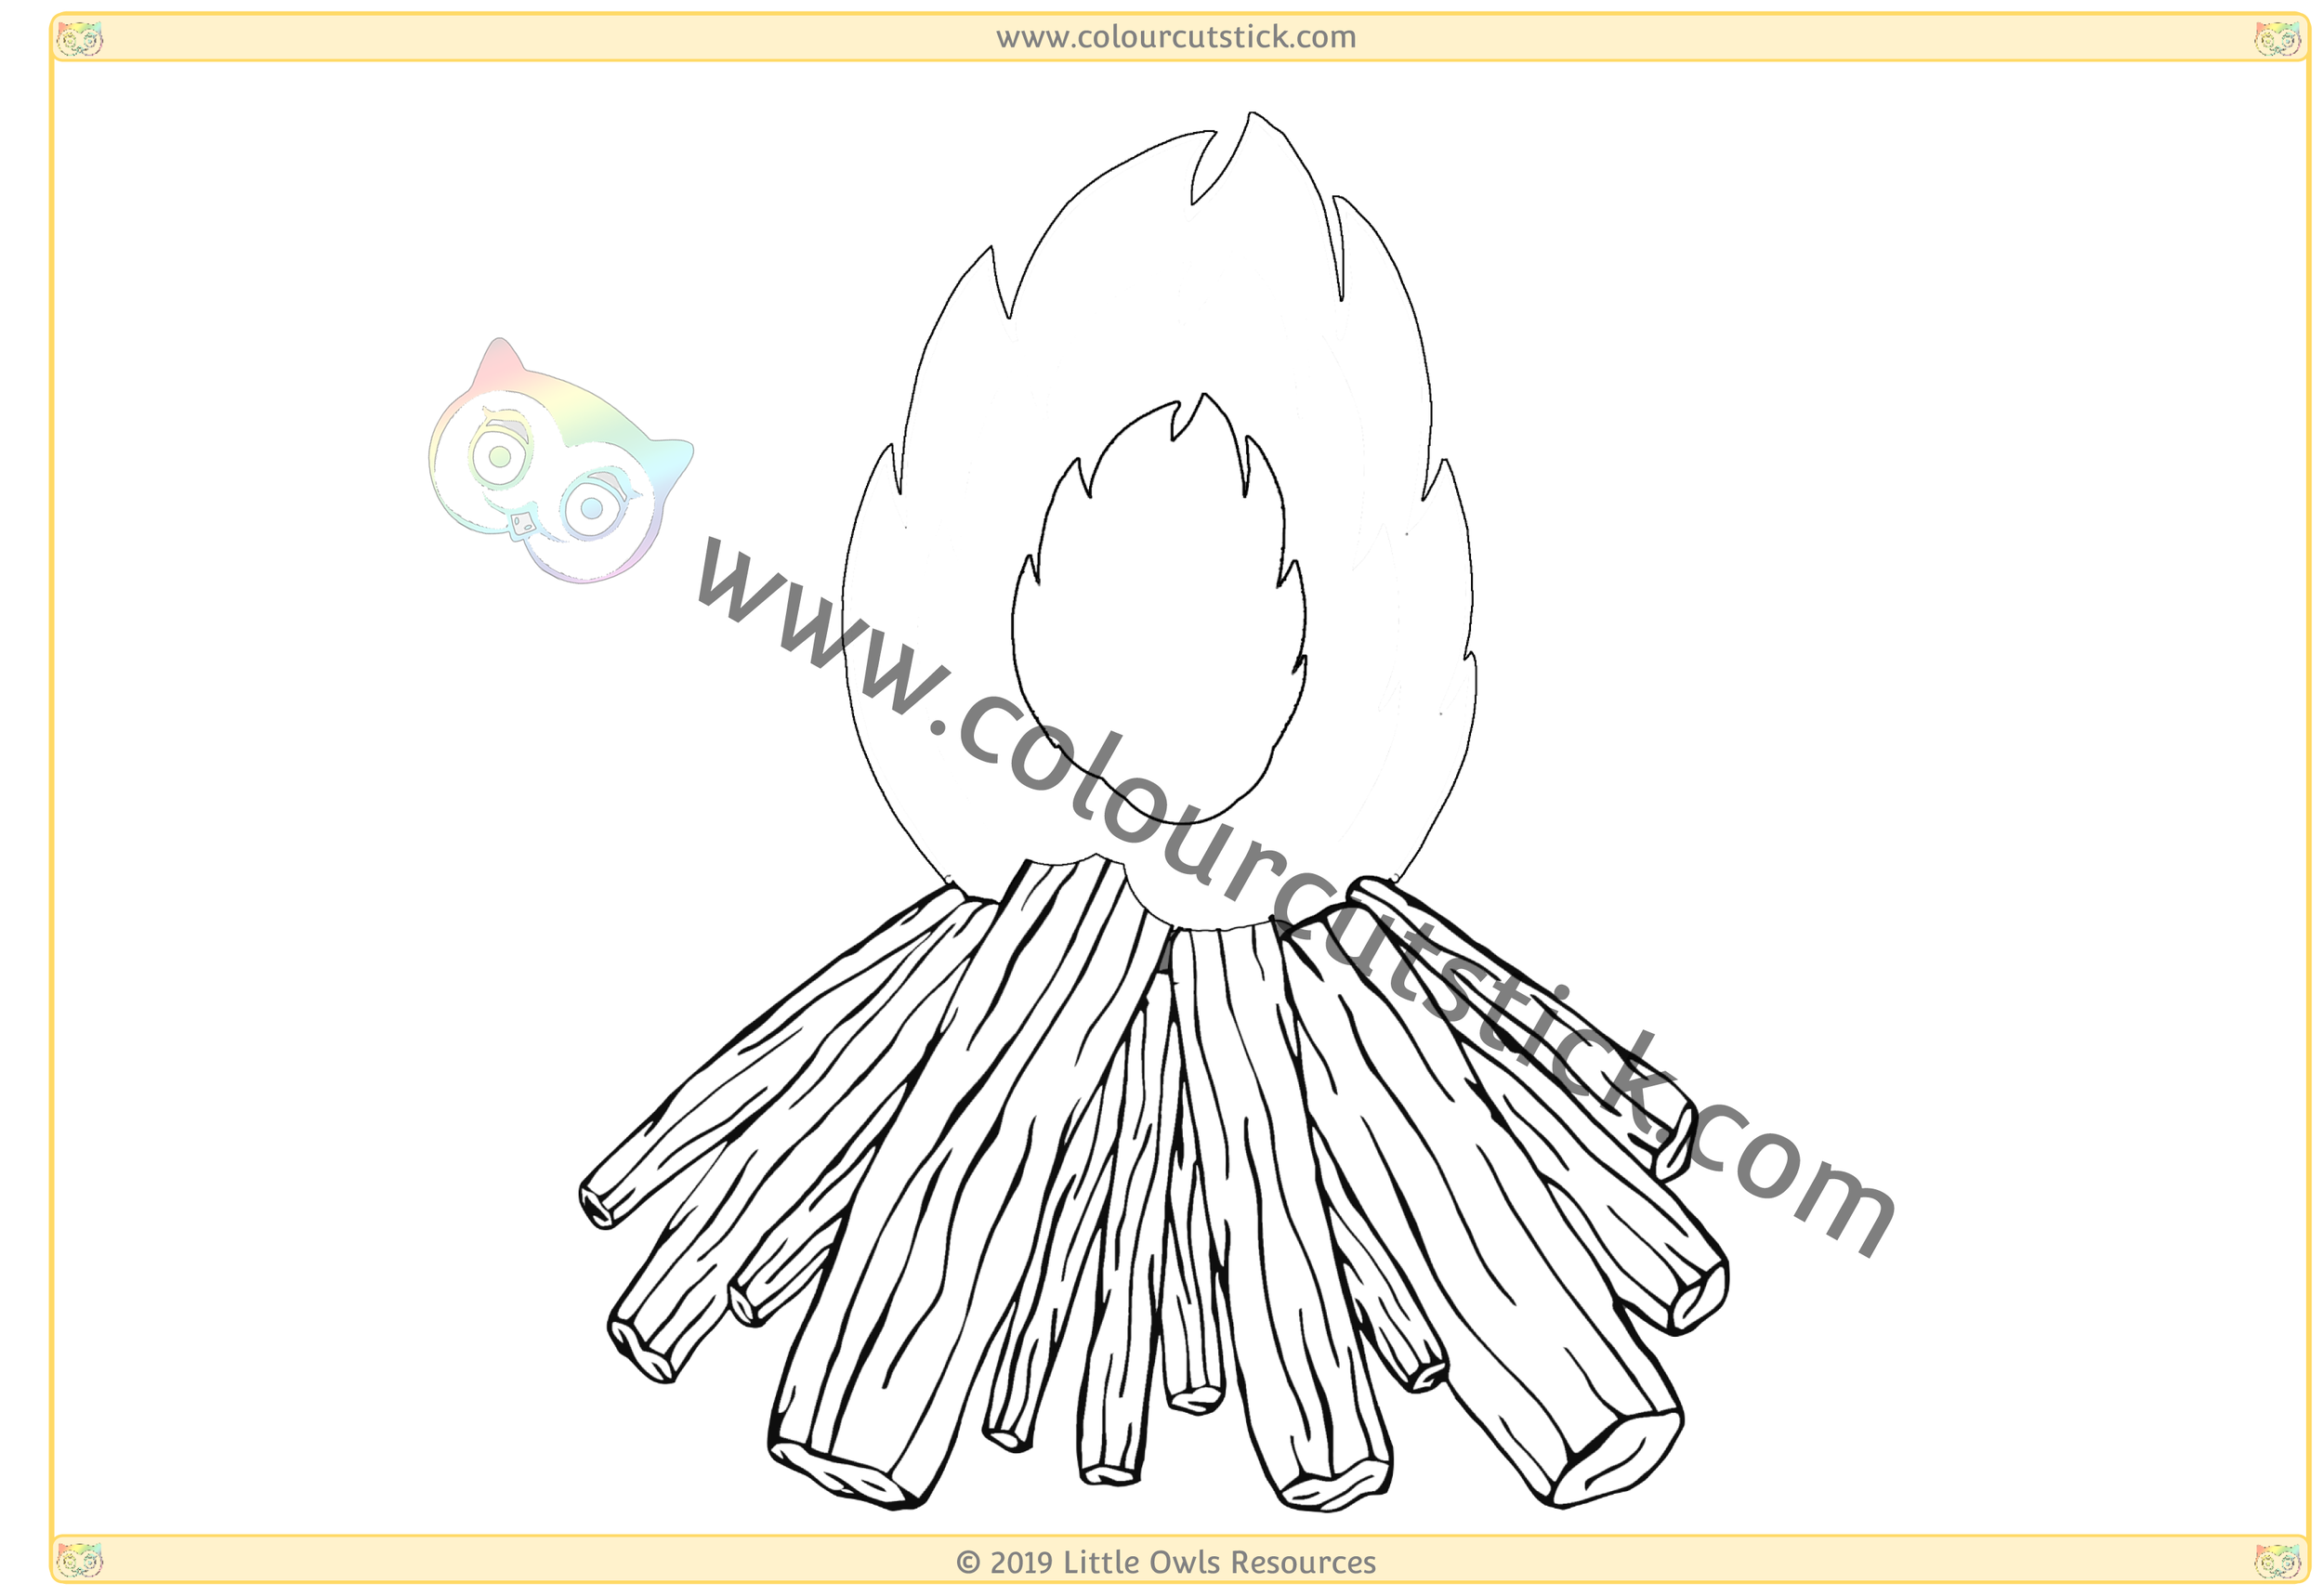 Fireworks Colouring CSS-1.png